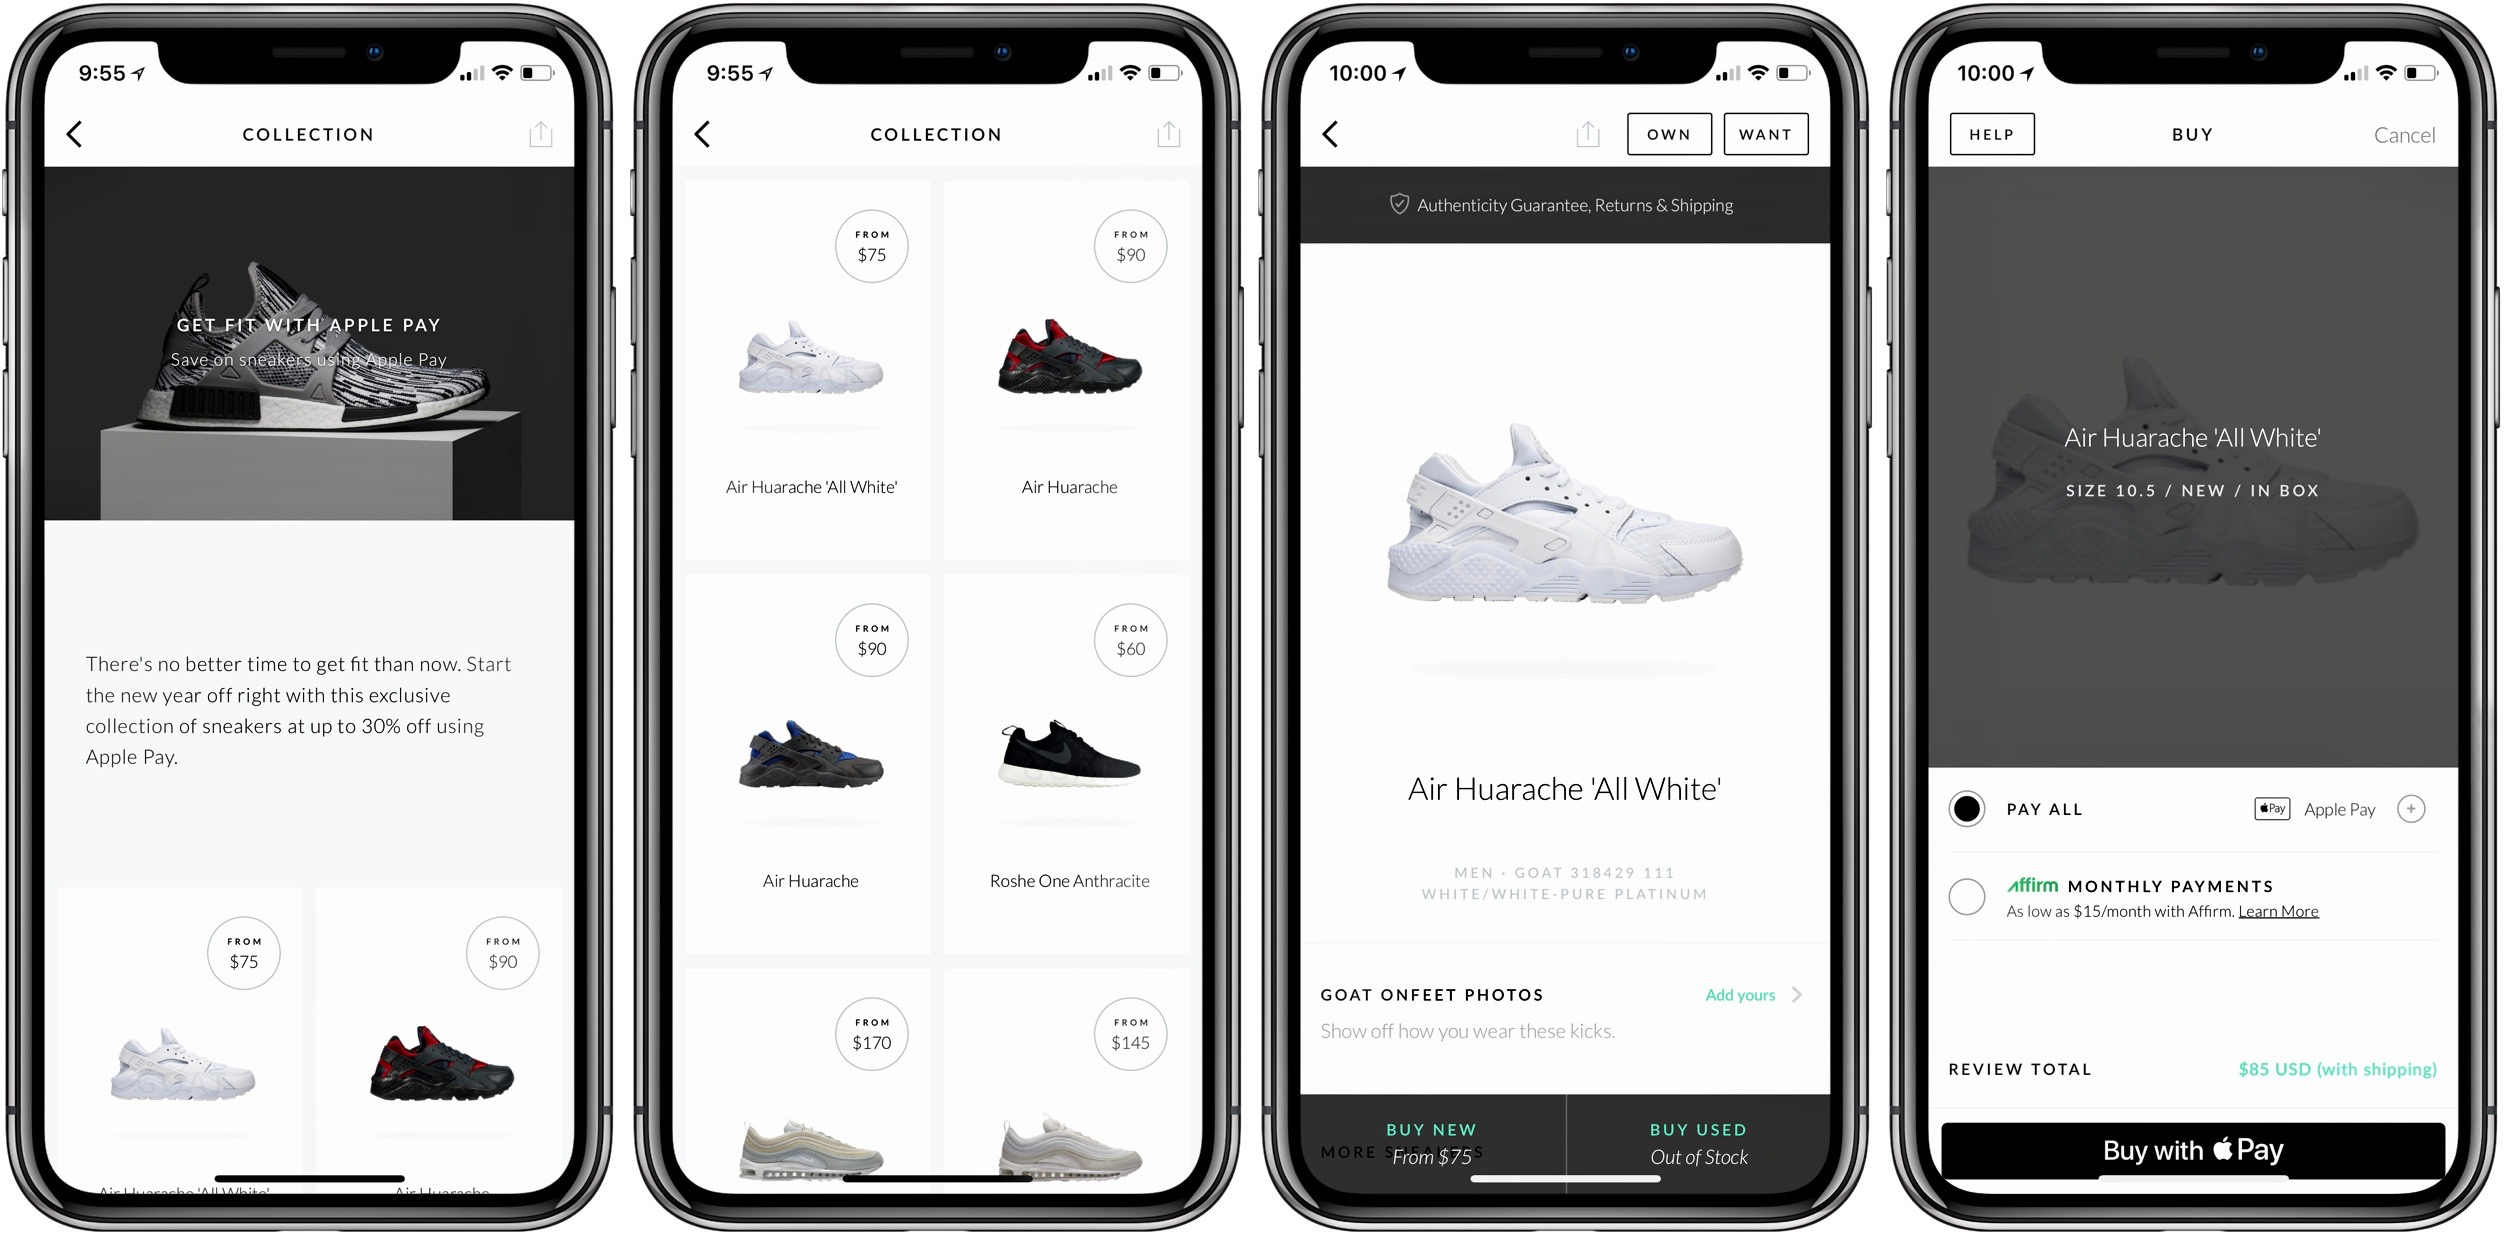 Apple Pay promotion brings up to 30% off sneakers through GOAT app